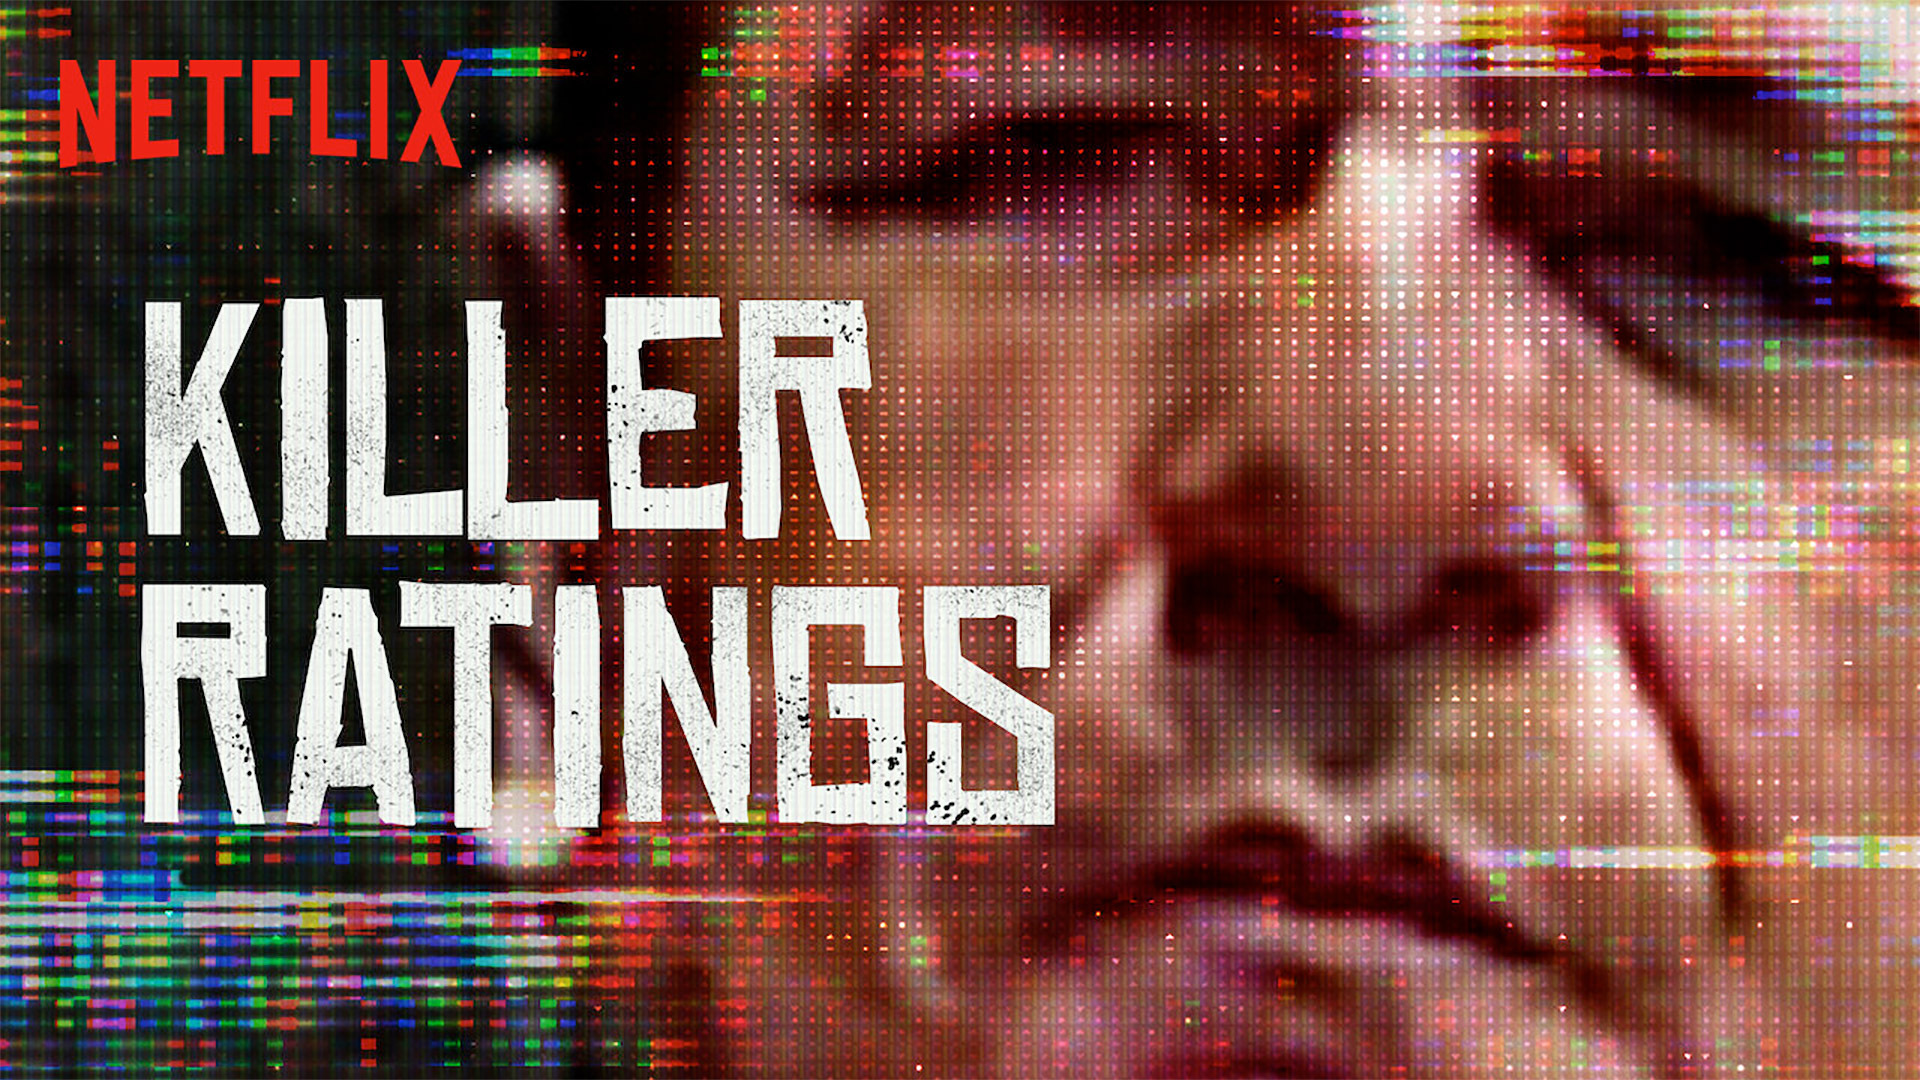 Netflix is releasing four brand new true crime documentaries